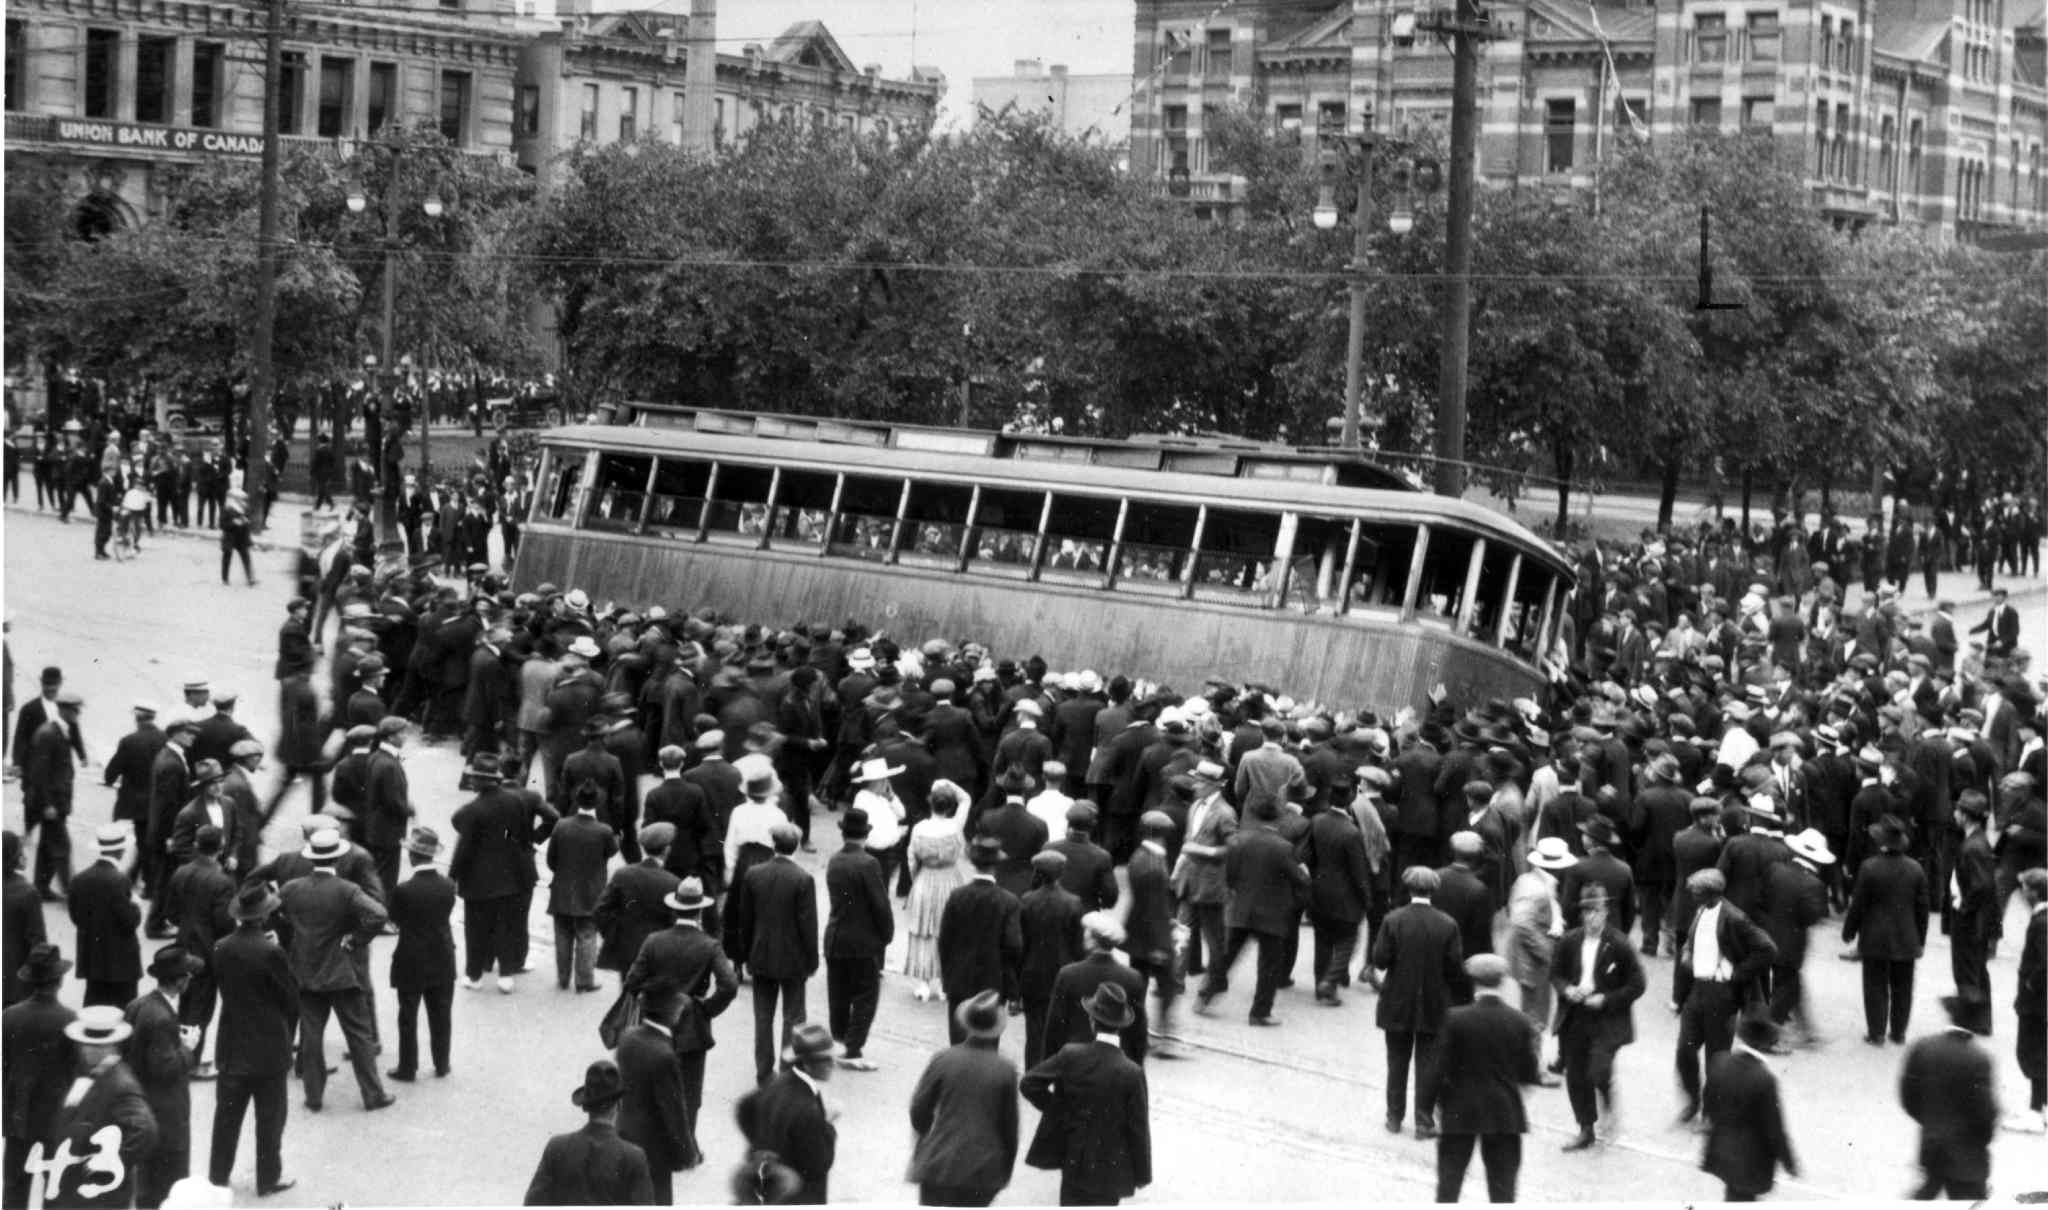 1919 Winnipeg general strike street car streetcar overturned on Main Street in front of the old City Hall building (Winnipeg Free Press)